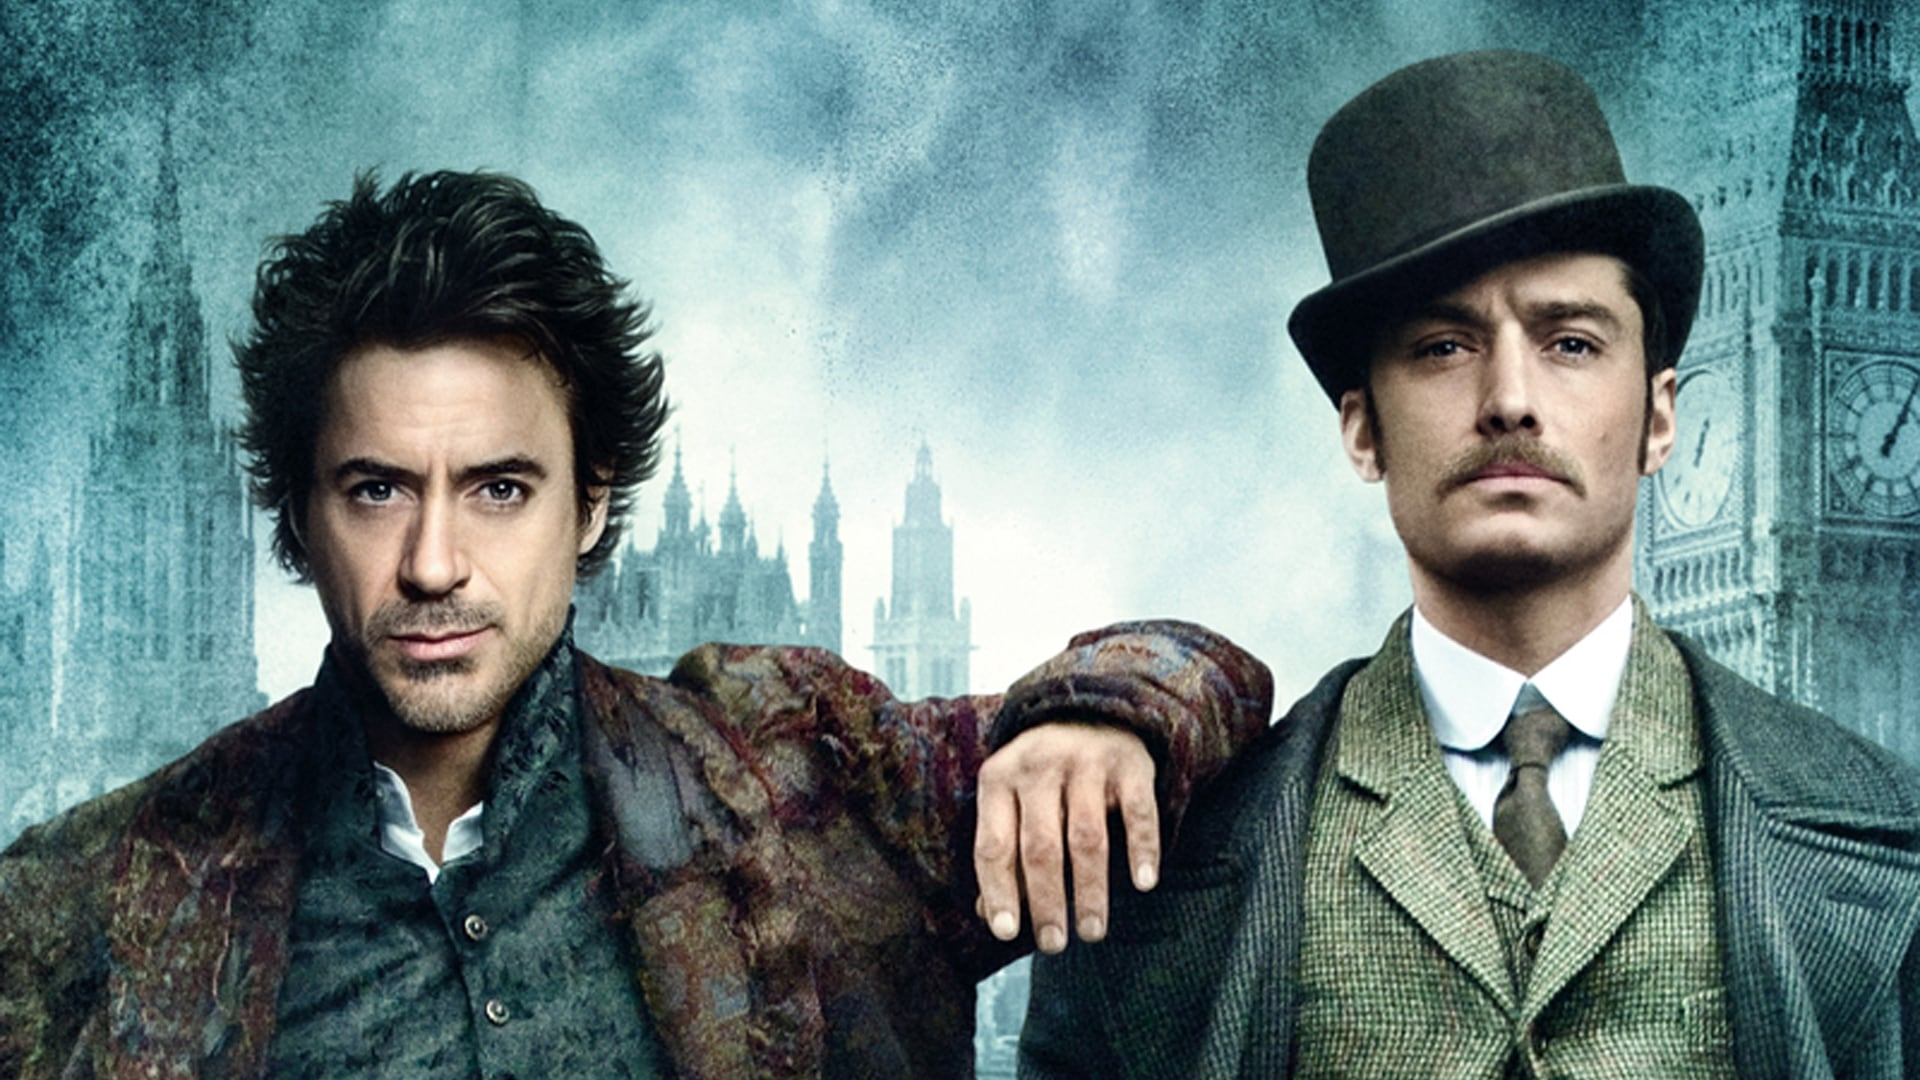 macbeth and sherlock holmes Download macbeth: folger shakespeare in the company of sherlock holmes: he recently starred in an acclaimed one-man staging of macbeth on broadway and appears.